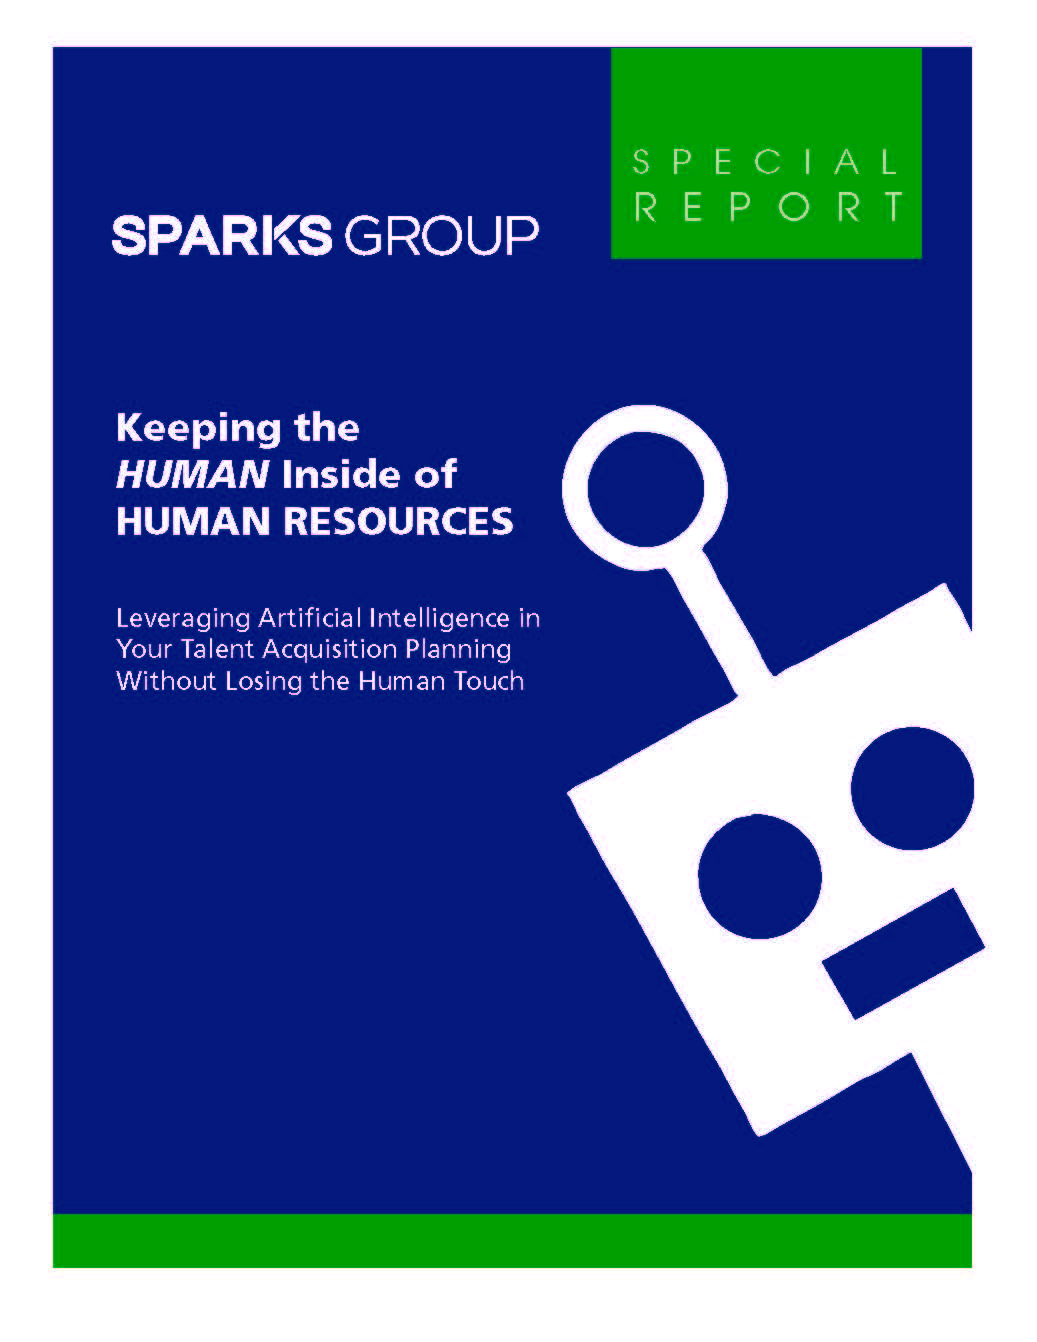 Sparks_Group_Human_Resources_Leveraging_Artificial_Intelligence_Talent_Acquisition_Report